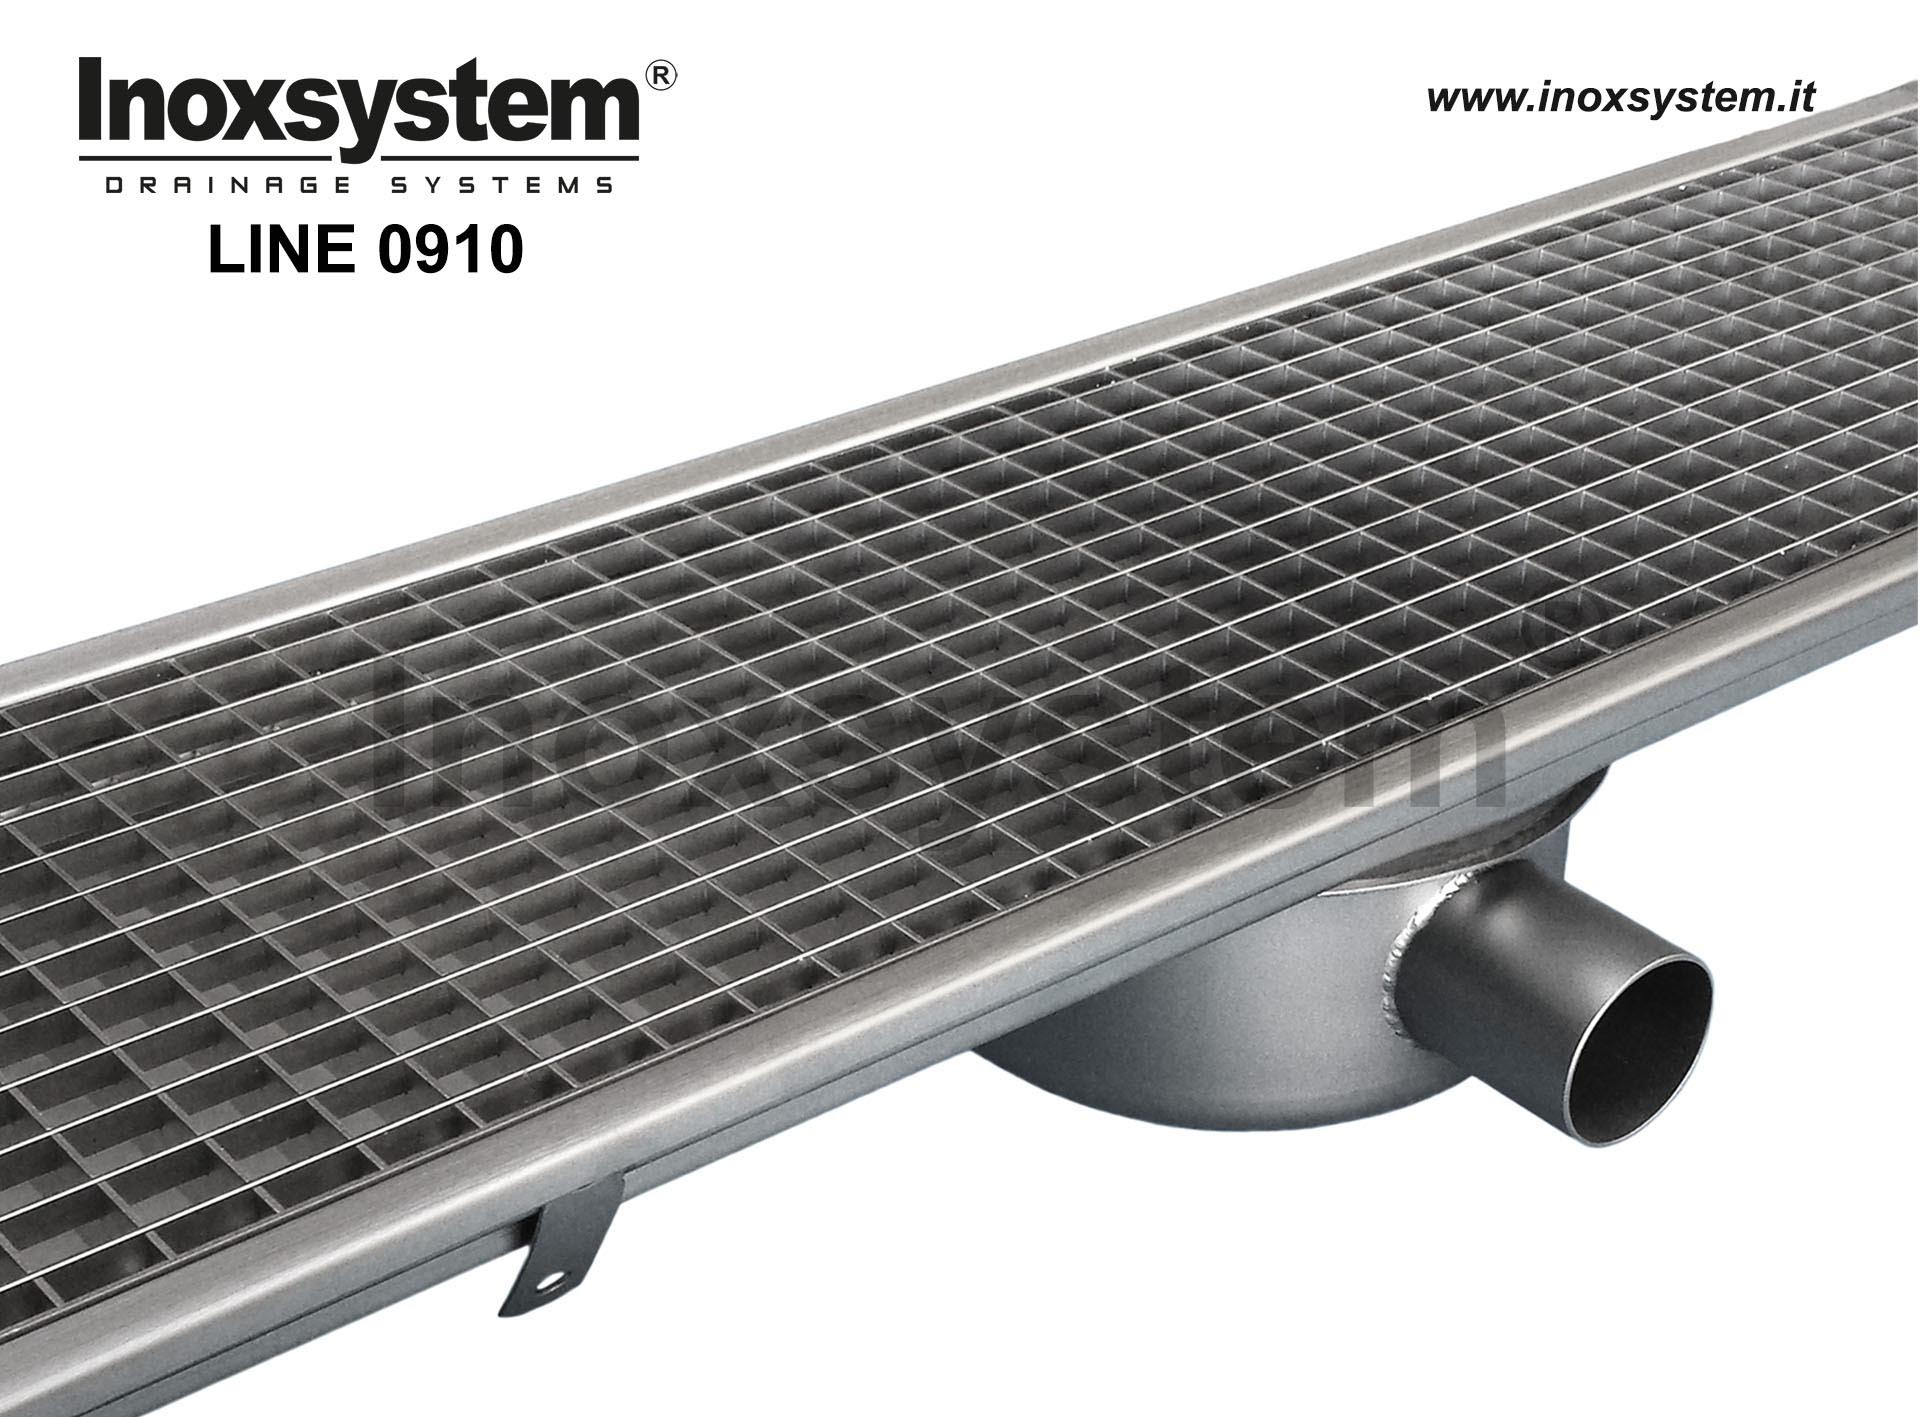 Standard stainless steel grating channel with siphoned outlet pipe Ø 63 mm and removable filter basket LINE 0910